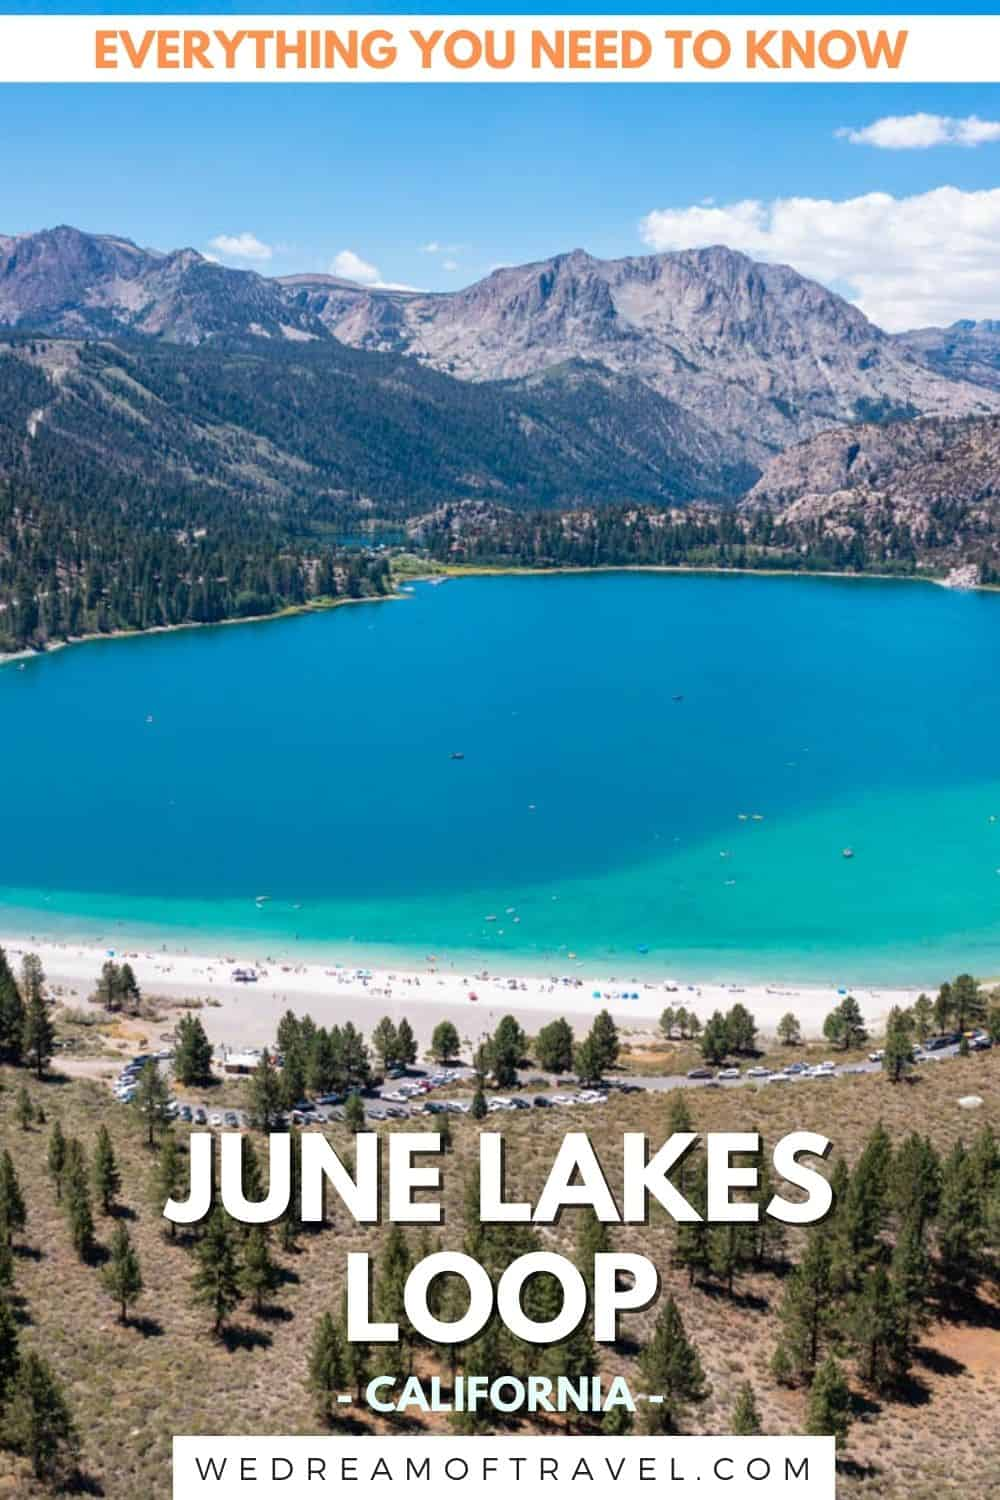 June Lake provides the perfect weekend getaway in California.  The mountain city has plenty of things to do and makes for the perfect stop on your way to Mammoth Lakes or Yosemite too.  Discover everything you need to know about exploring this area and the spectacular June Lakes Loop scenic drive.